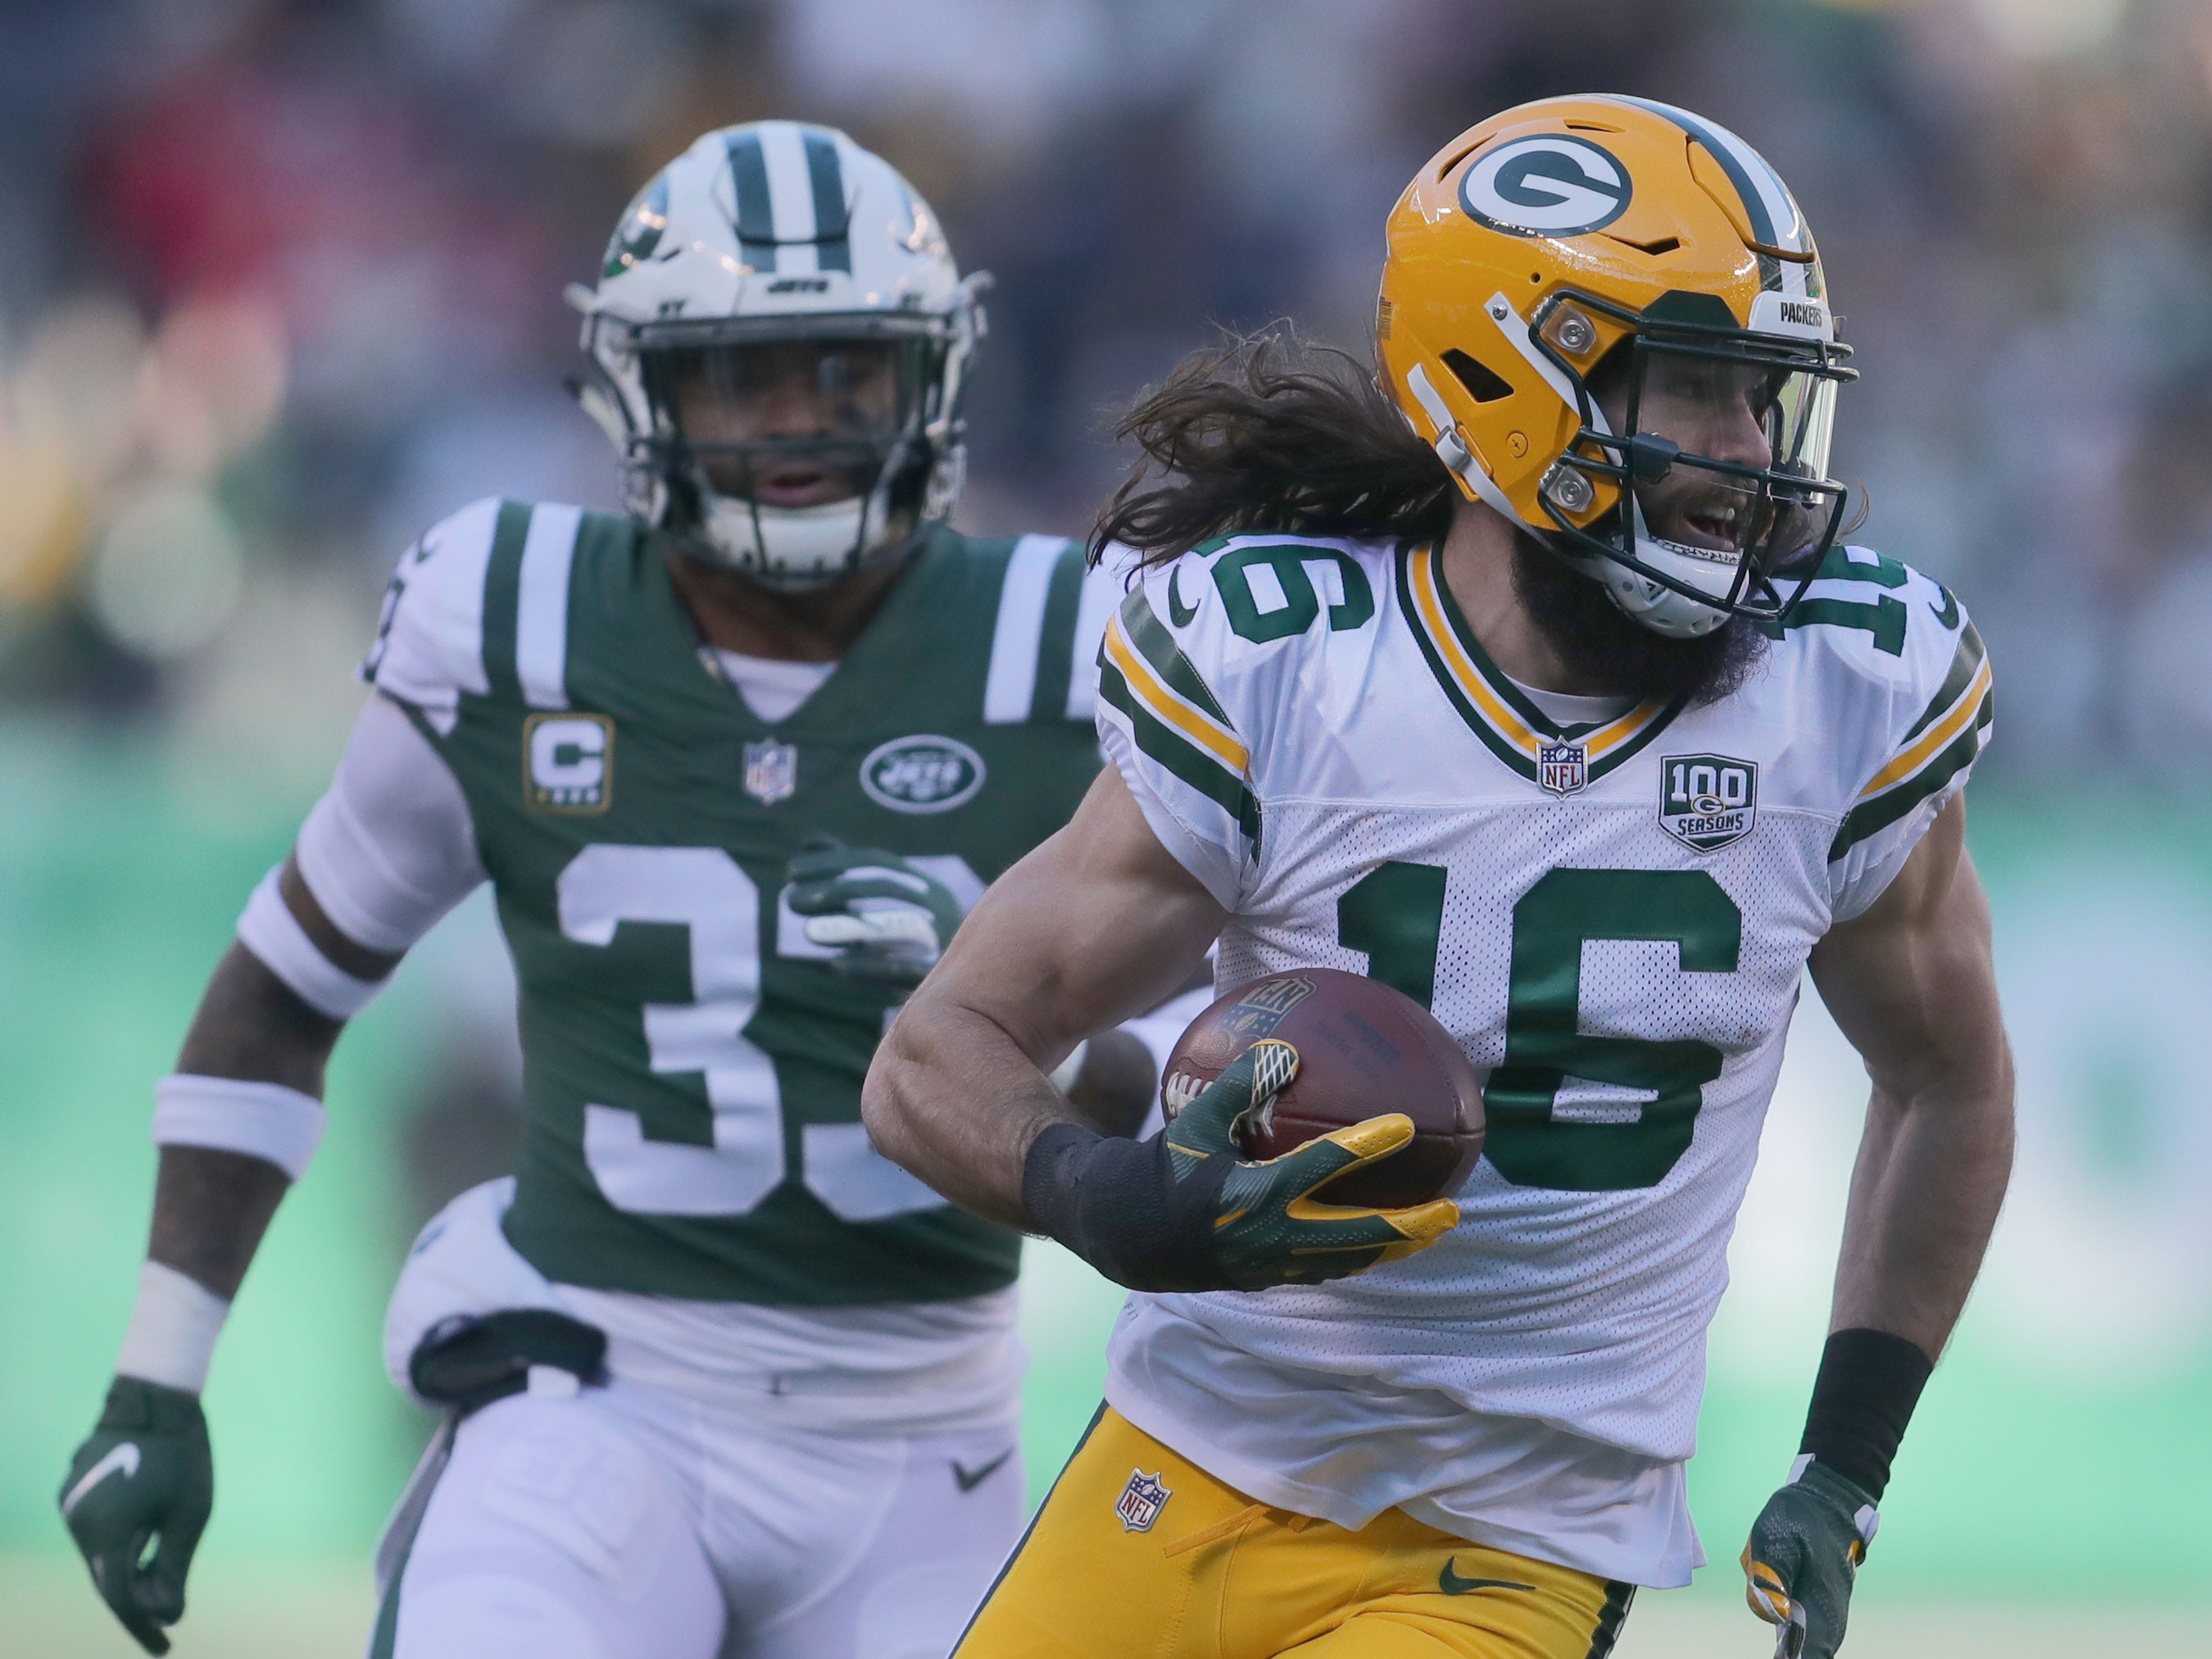 Green Bay Packers' Jake Kumerow scores a touchdown  during first half of the Green Bay Packers game against the New York Jets at MetLife Stadium Sunday, Dec. 23, 2018, in East Rutherford.